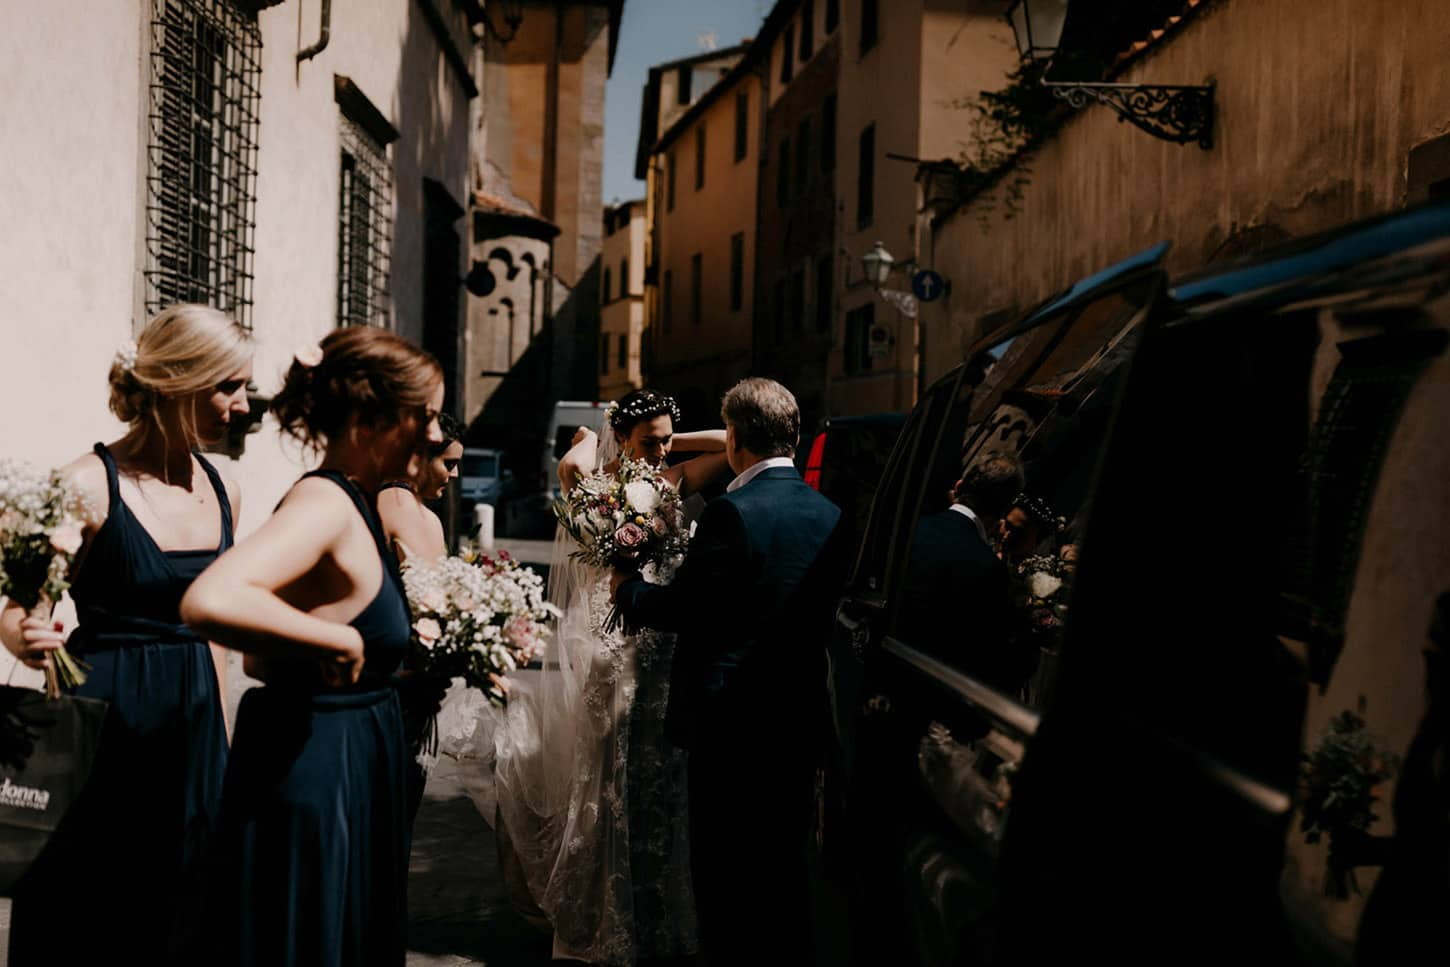 063-kieran-laura-italy-lucca-destination-wedding